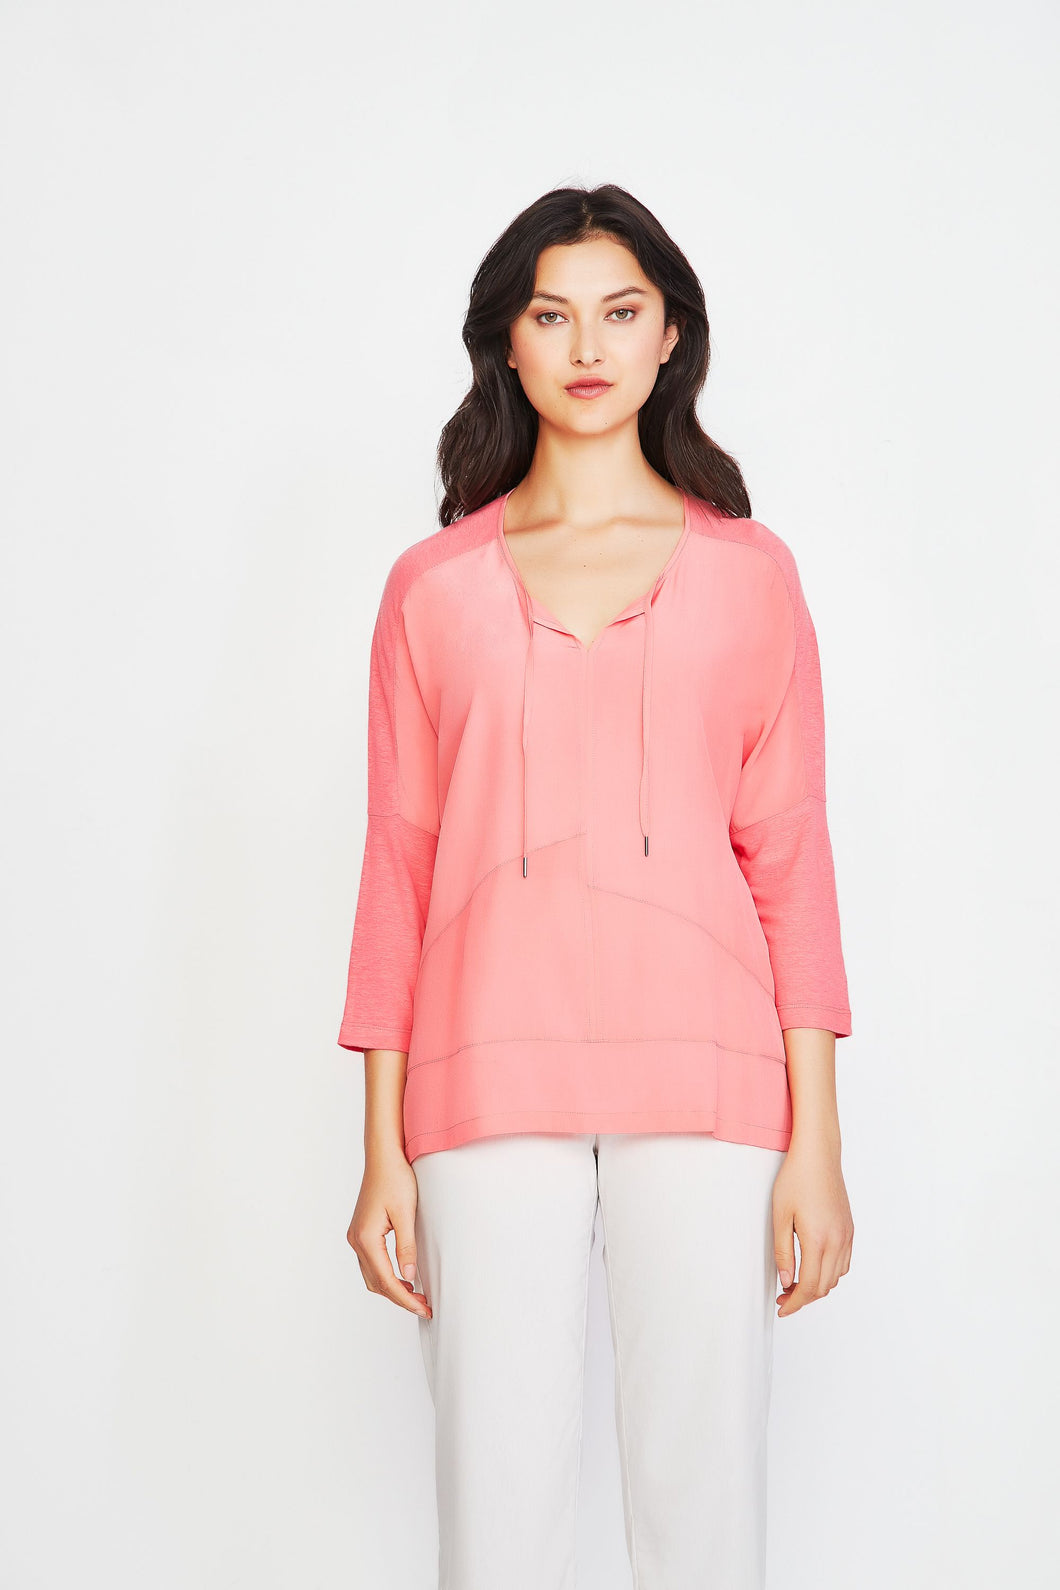 Verge Freya Top